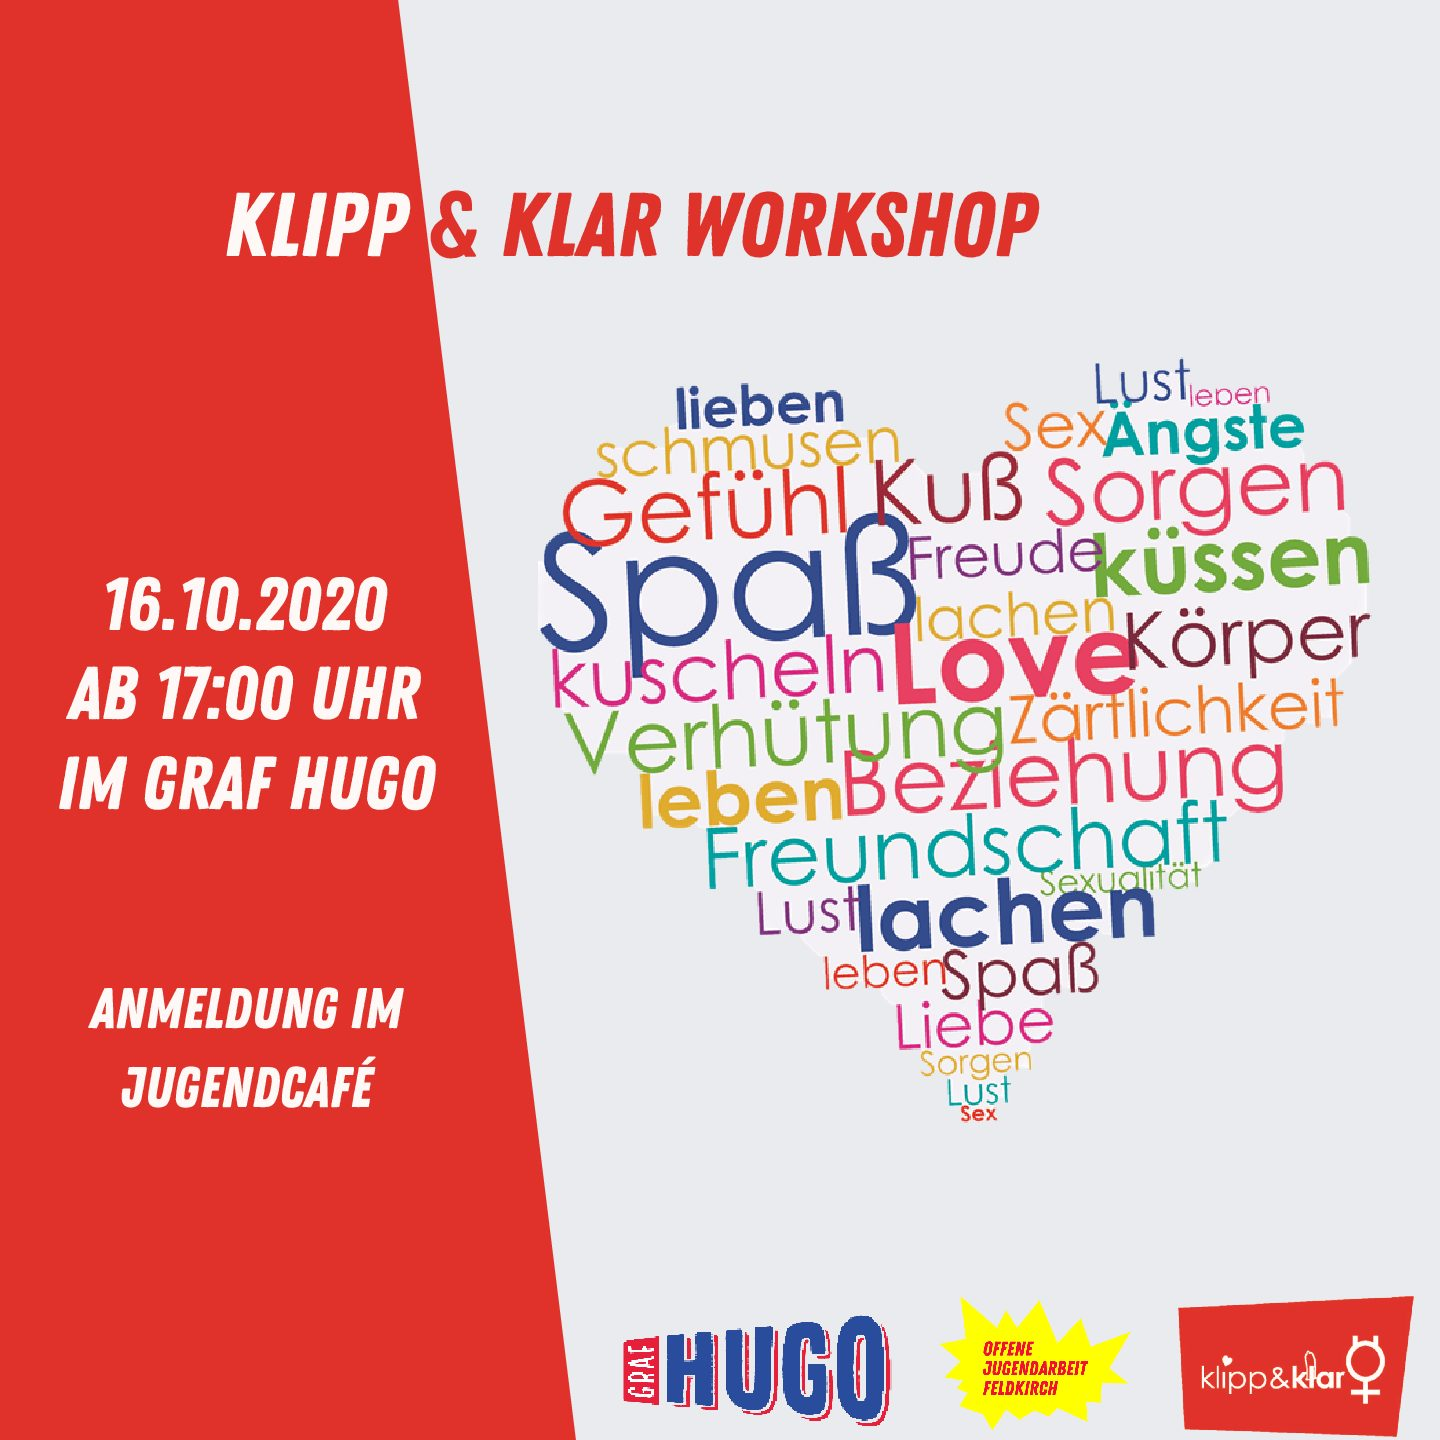 Klipp & Klar Workshop